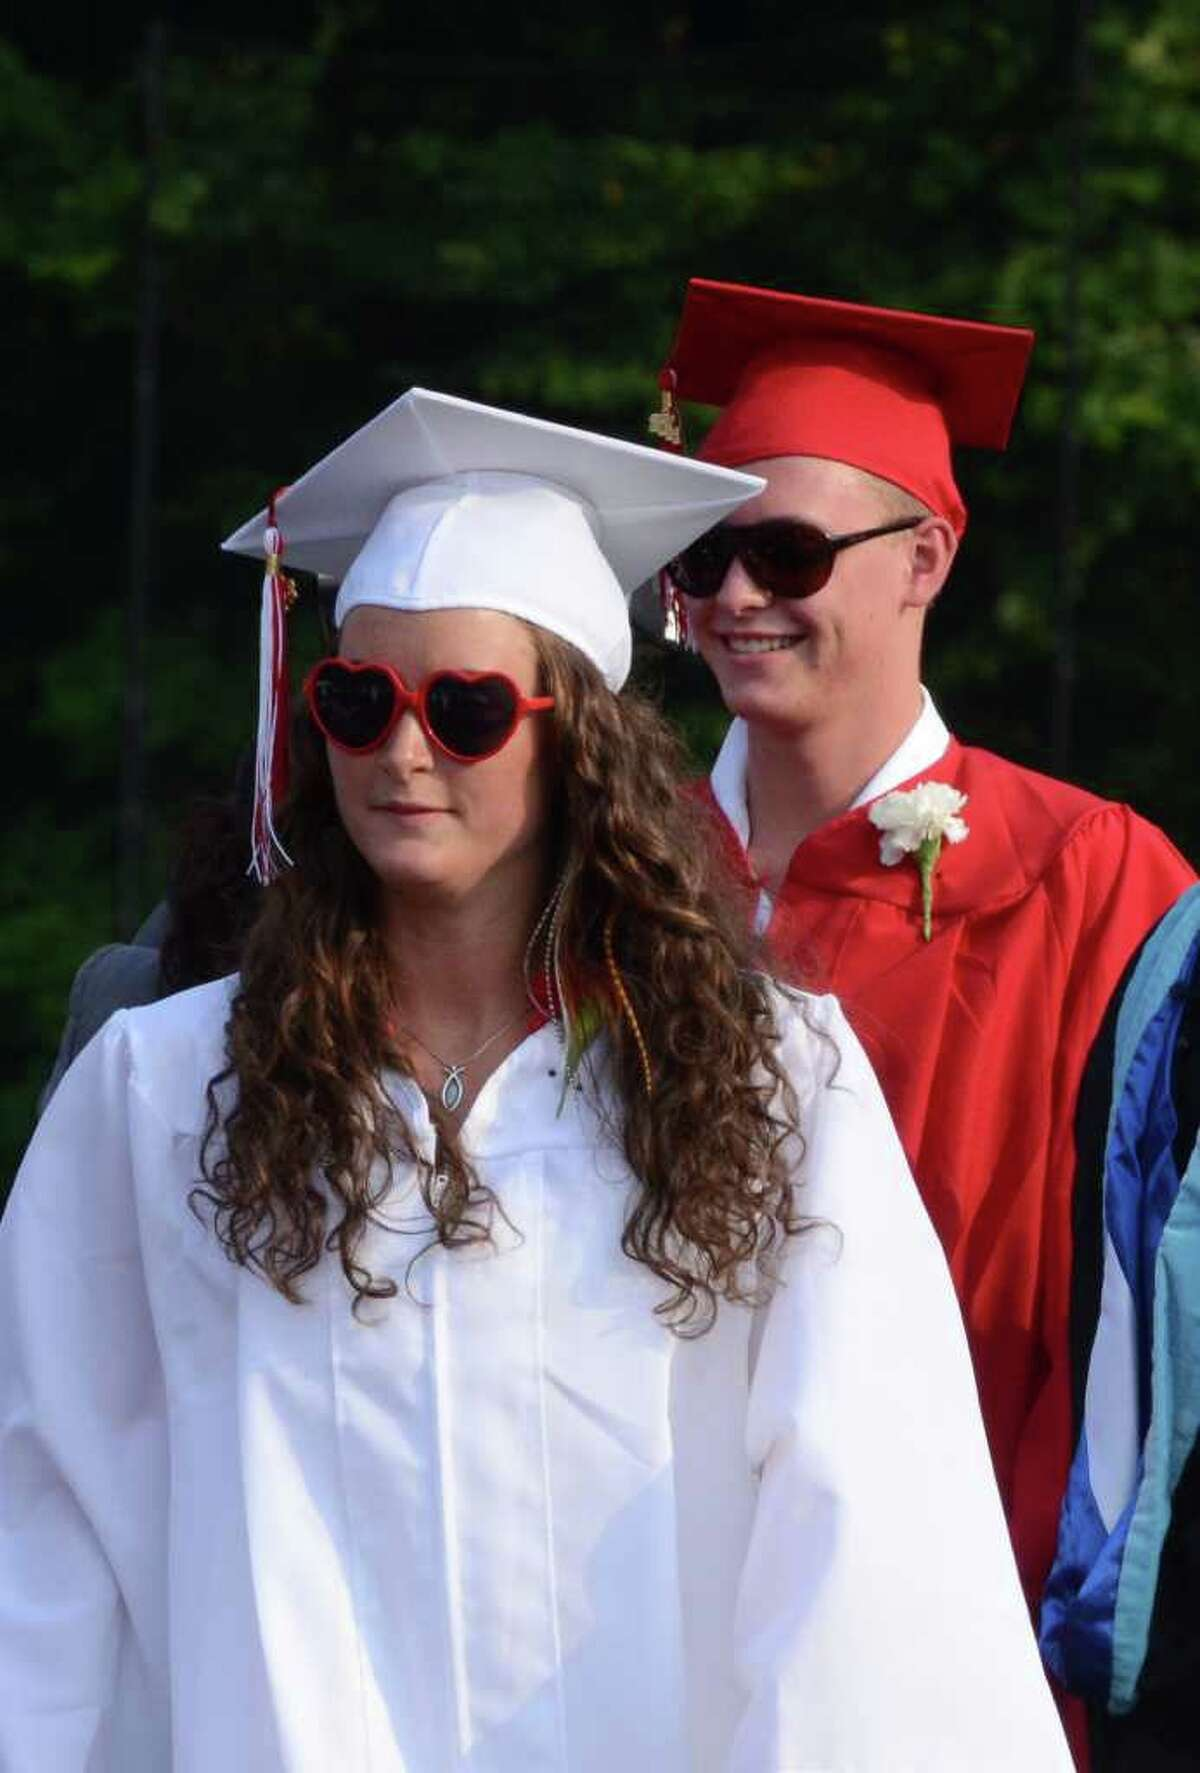 Alexandra Lloyd and Henry Lloyd sports sunglasses during the 2011 New Canaan High School Commencement on Tuesday, June 21, 2011.